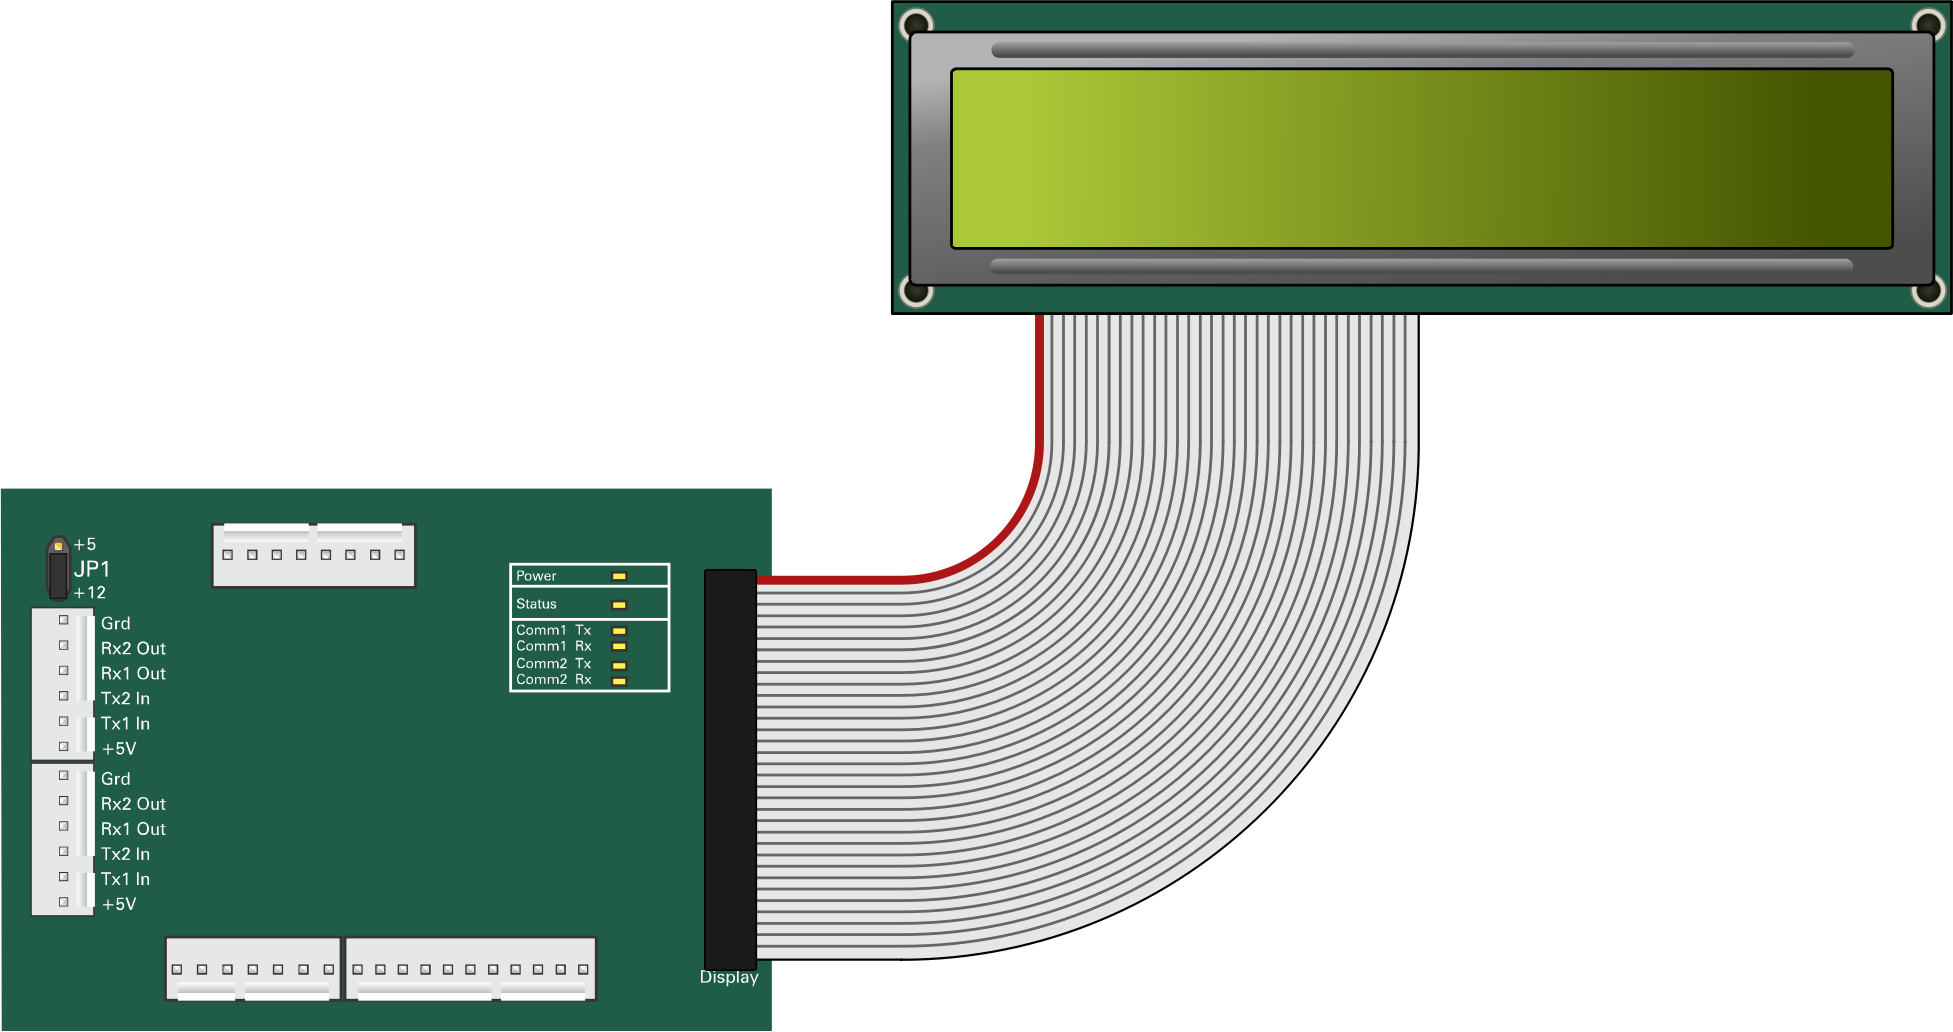 Circuit board png transparent. Lcd display with icons